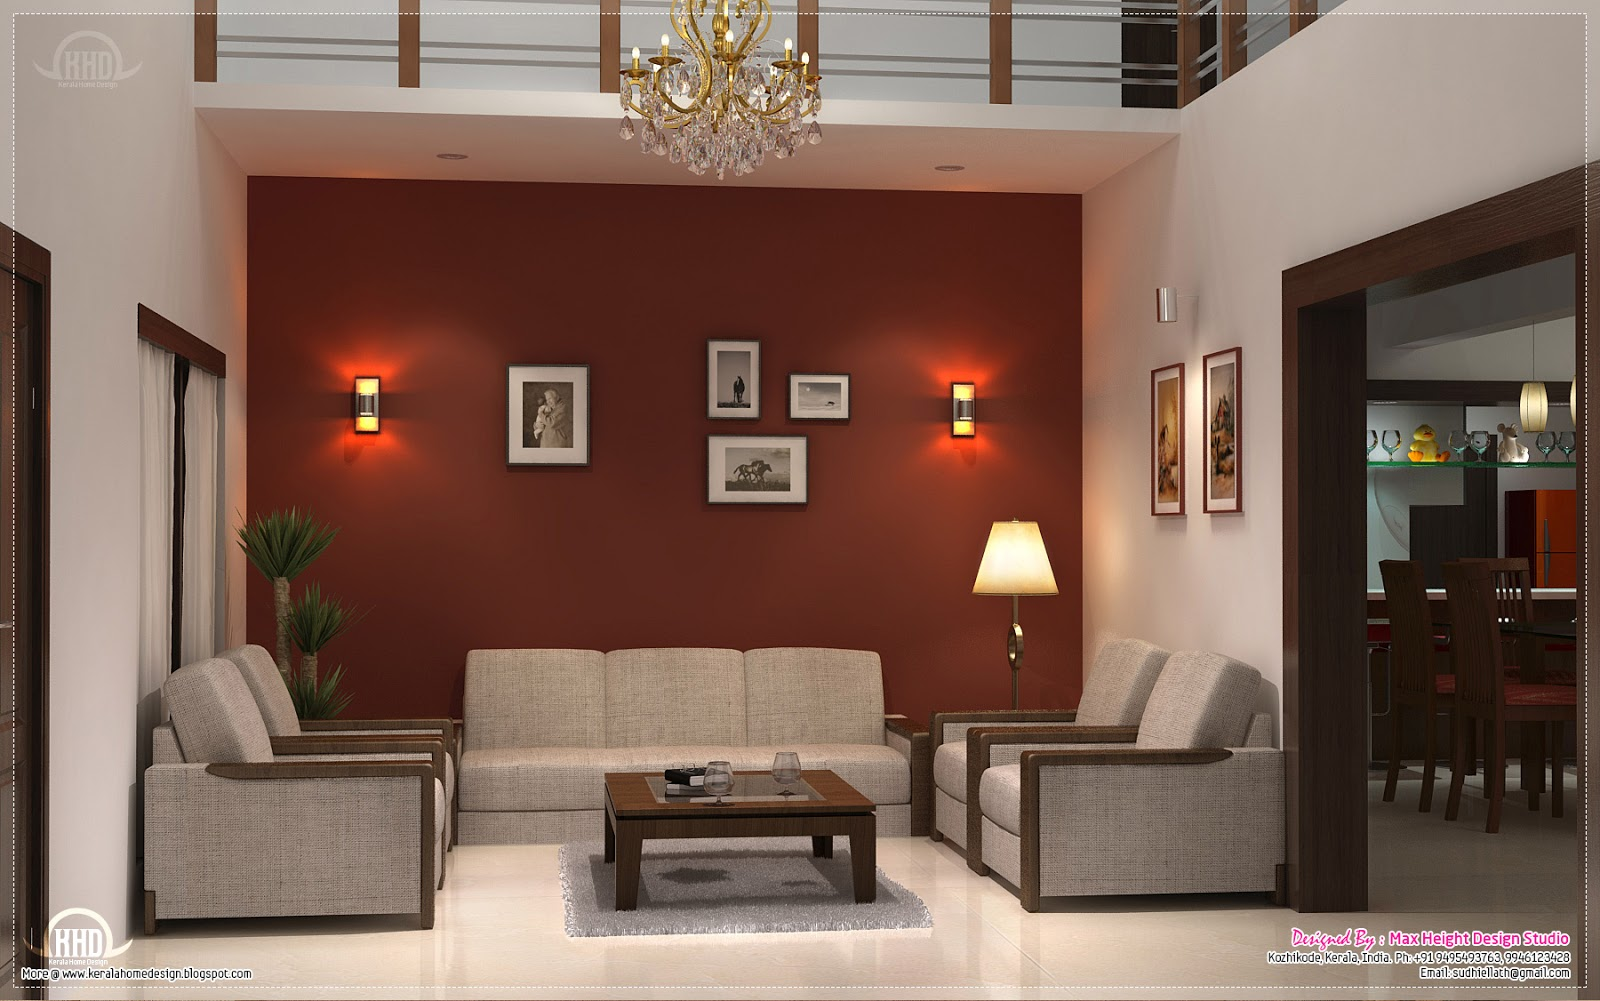 Home interior design ideas kerala home design and floor plans - Home designs interior ...